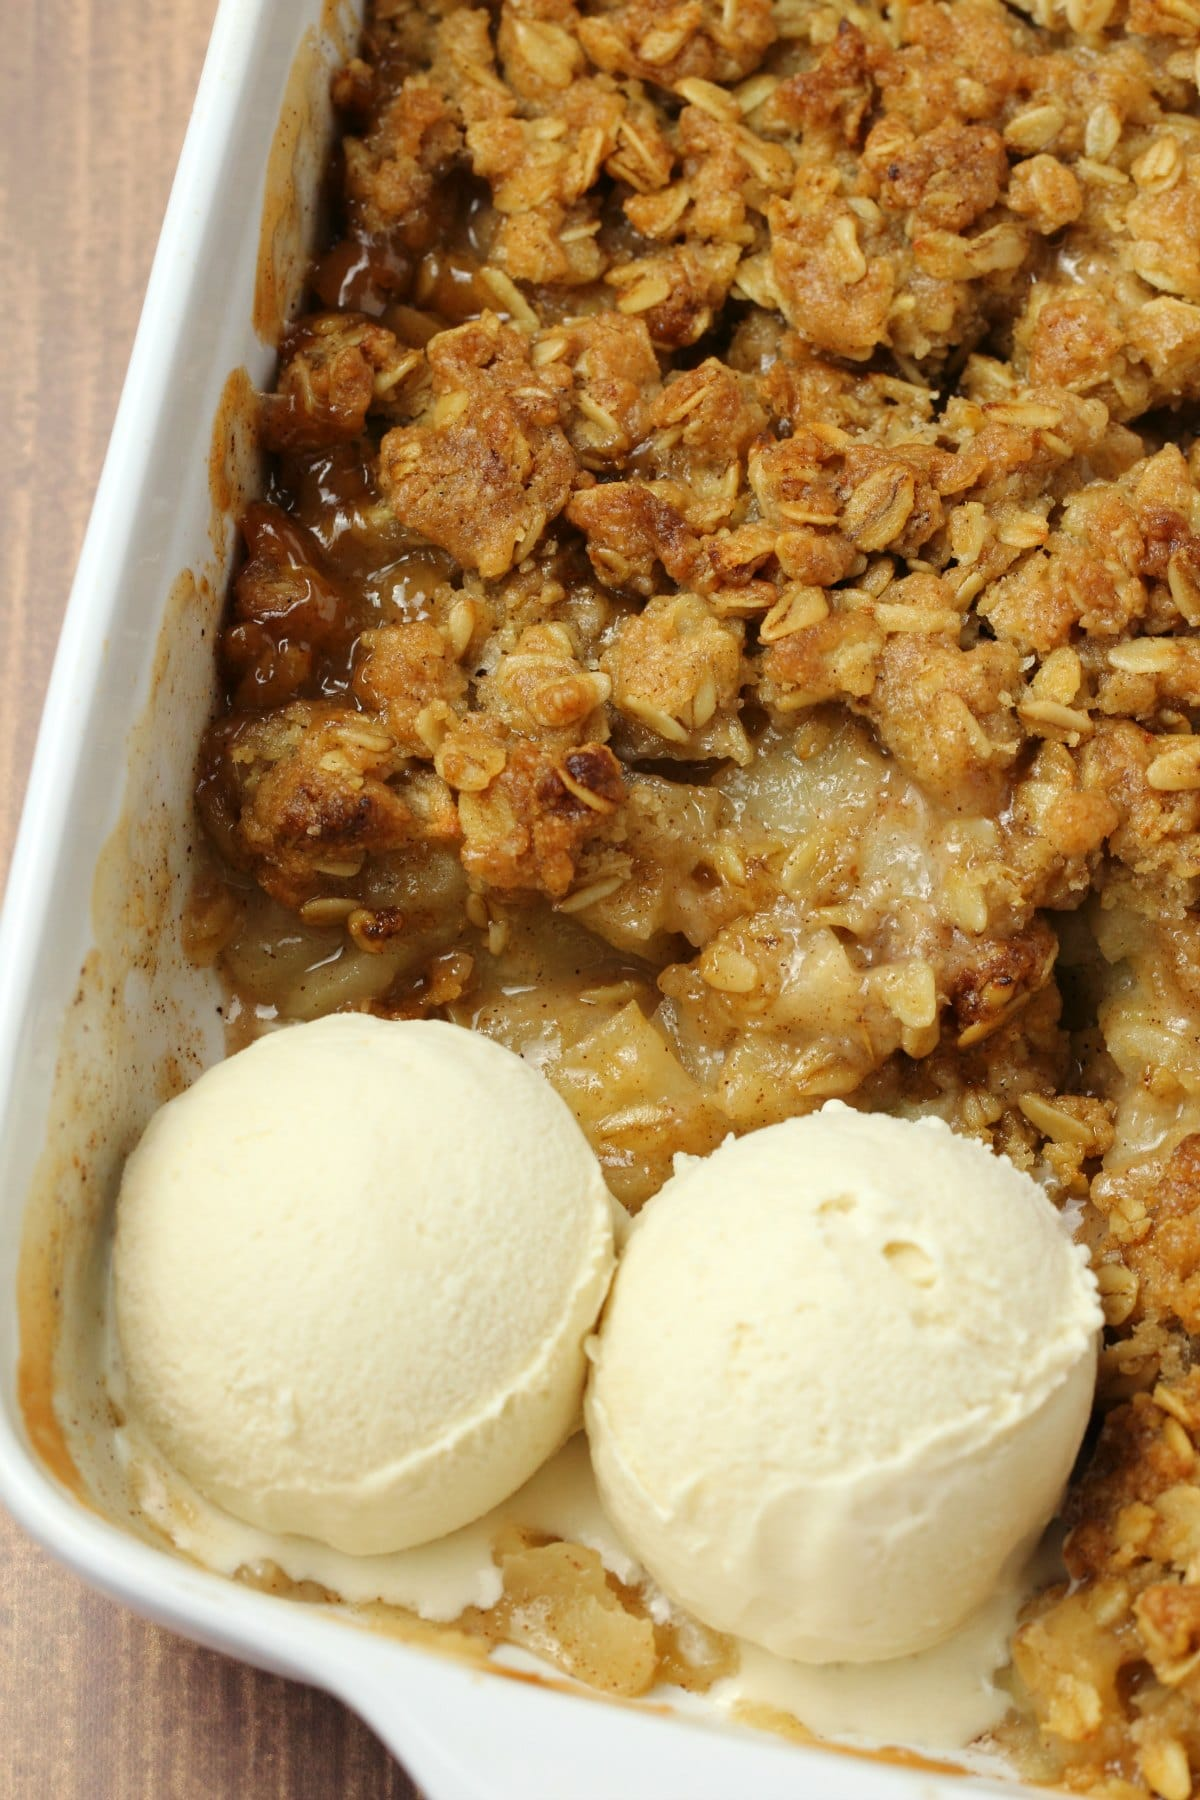 Vegan apple crisp in a white ceramic dish with two scoops of vegan vanilla ice cream.